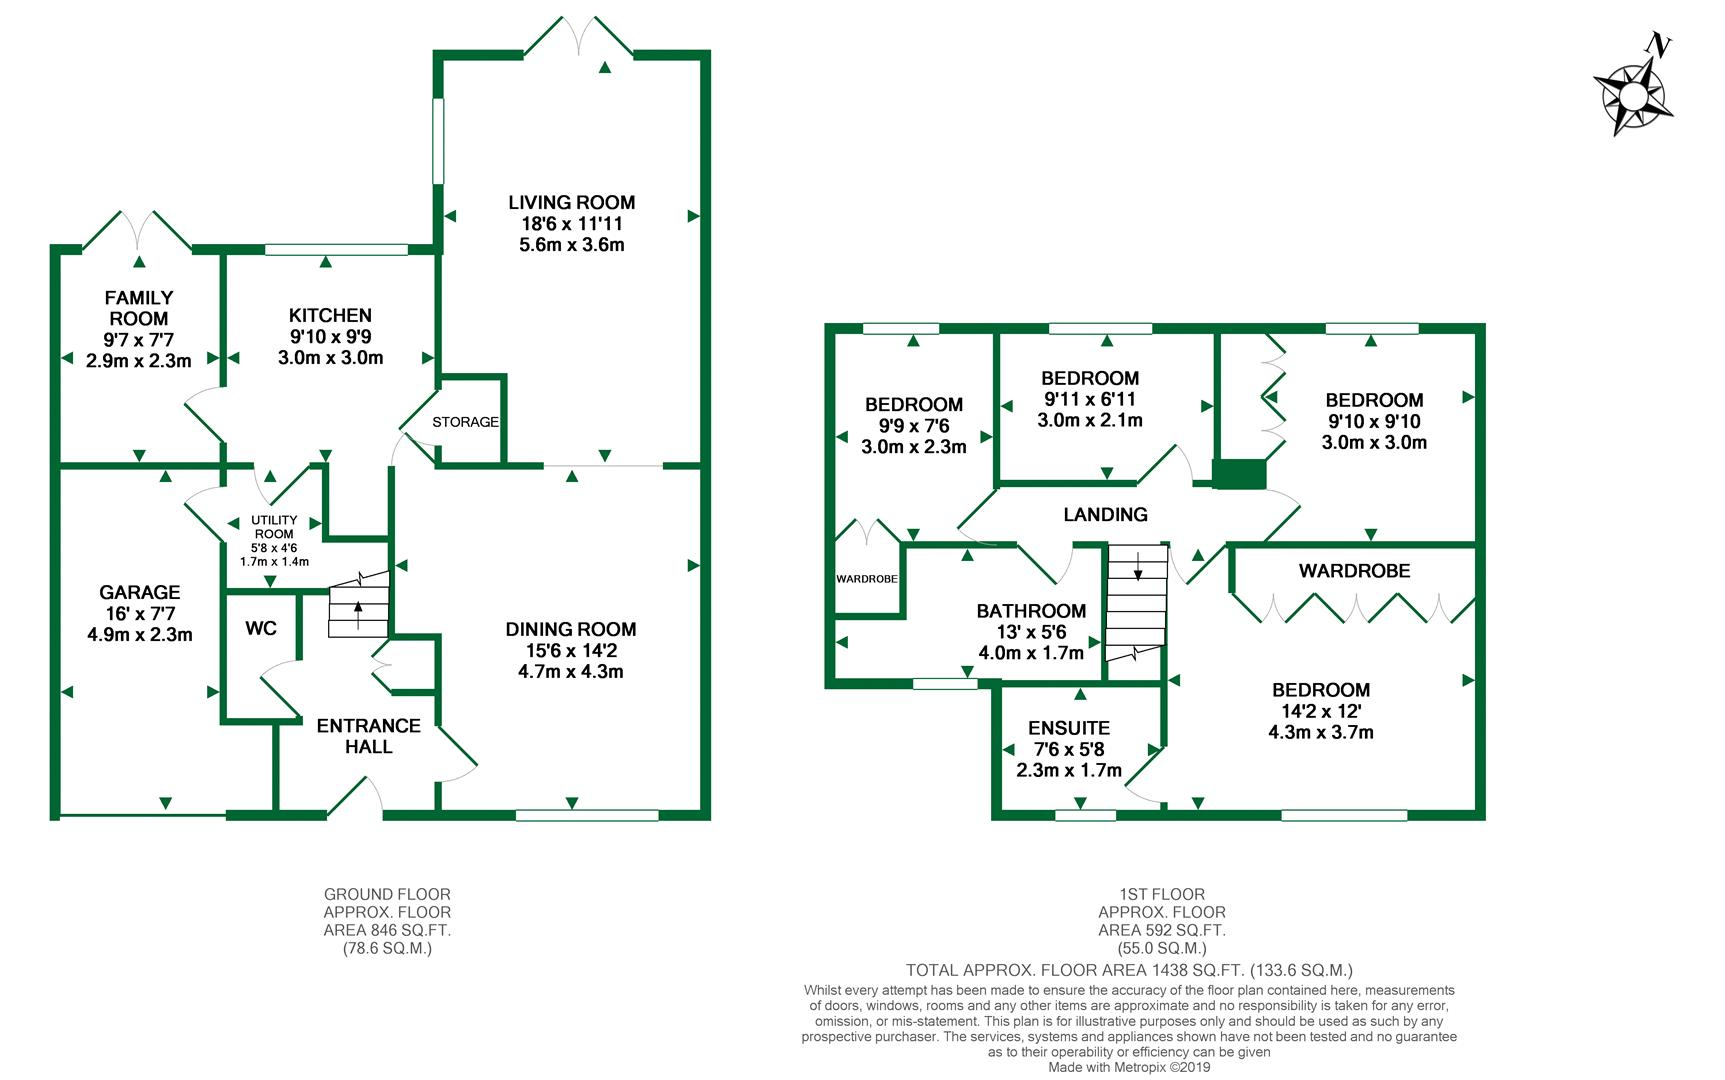 Floorplans For Newalls Rise, Wargrave, Reading